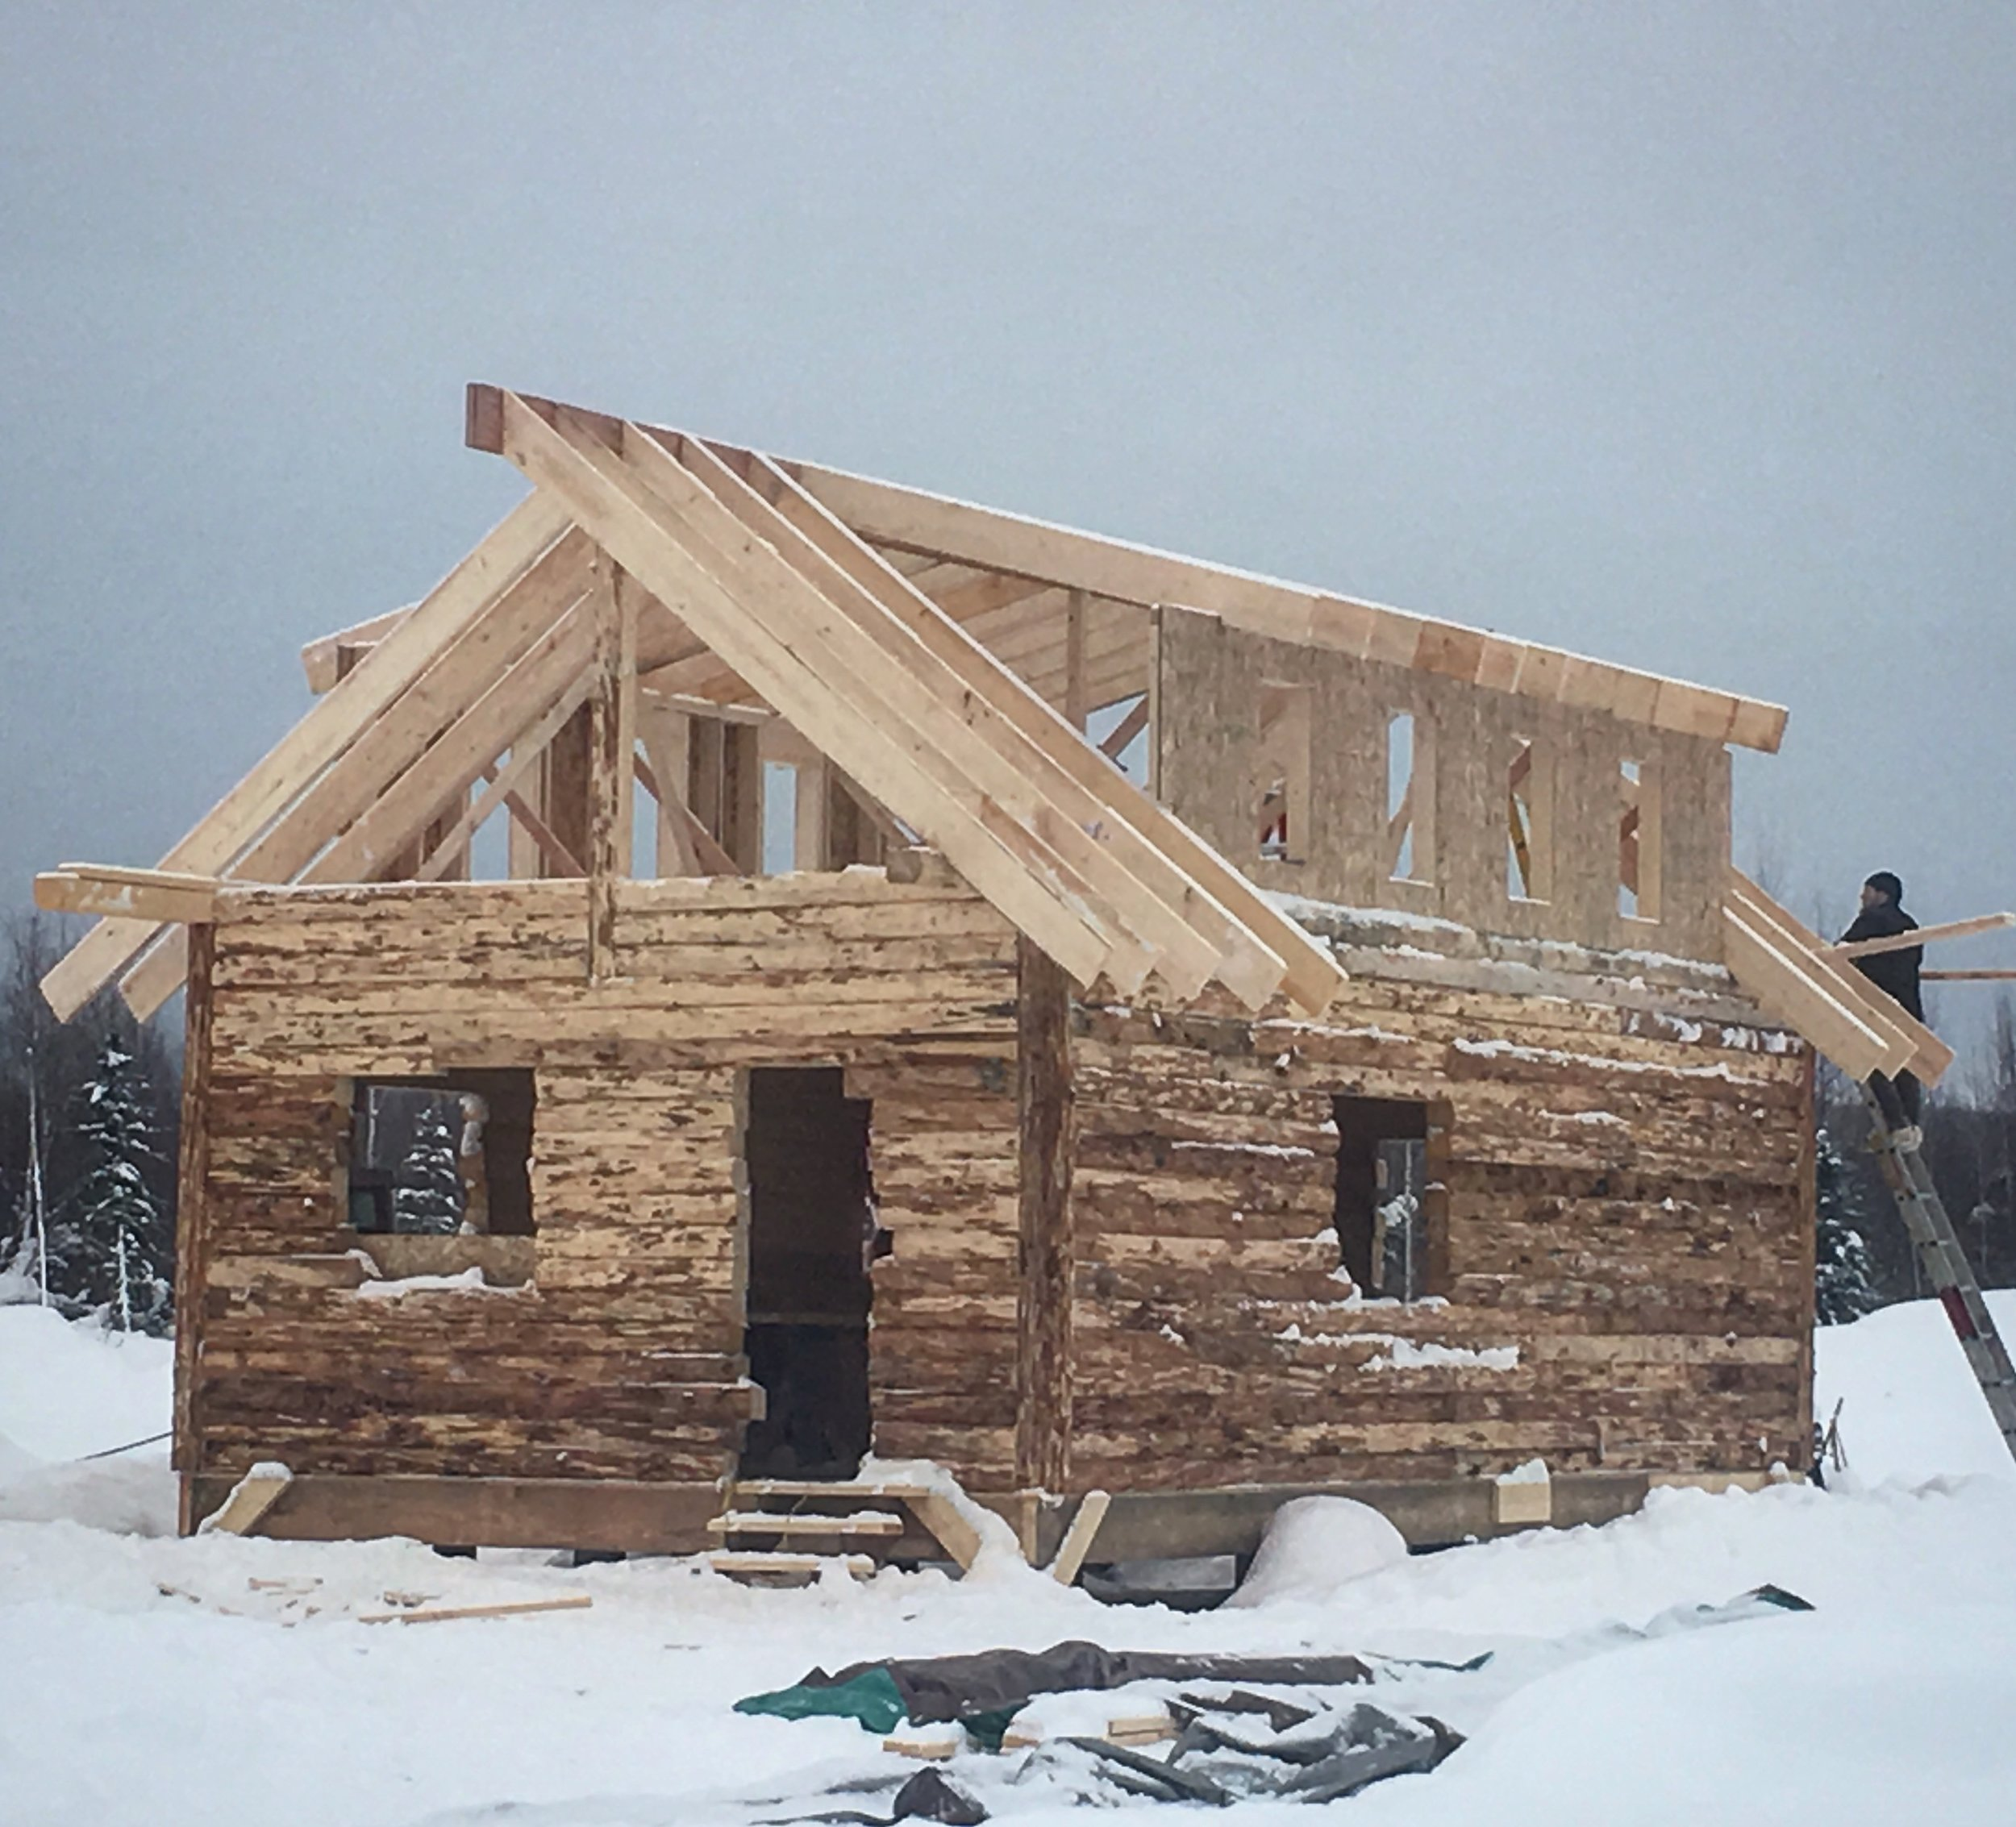 It's starting to look like a cabin!